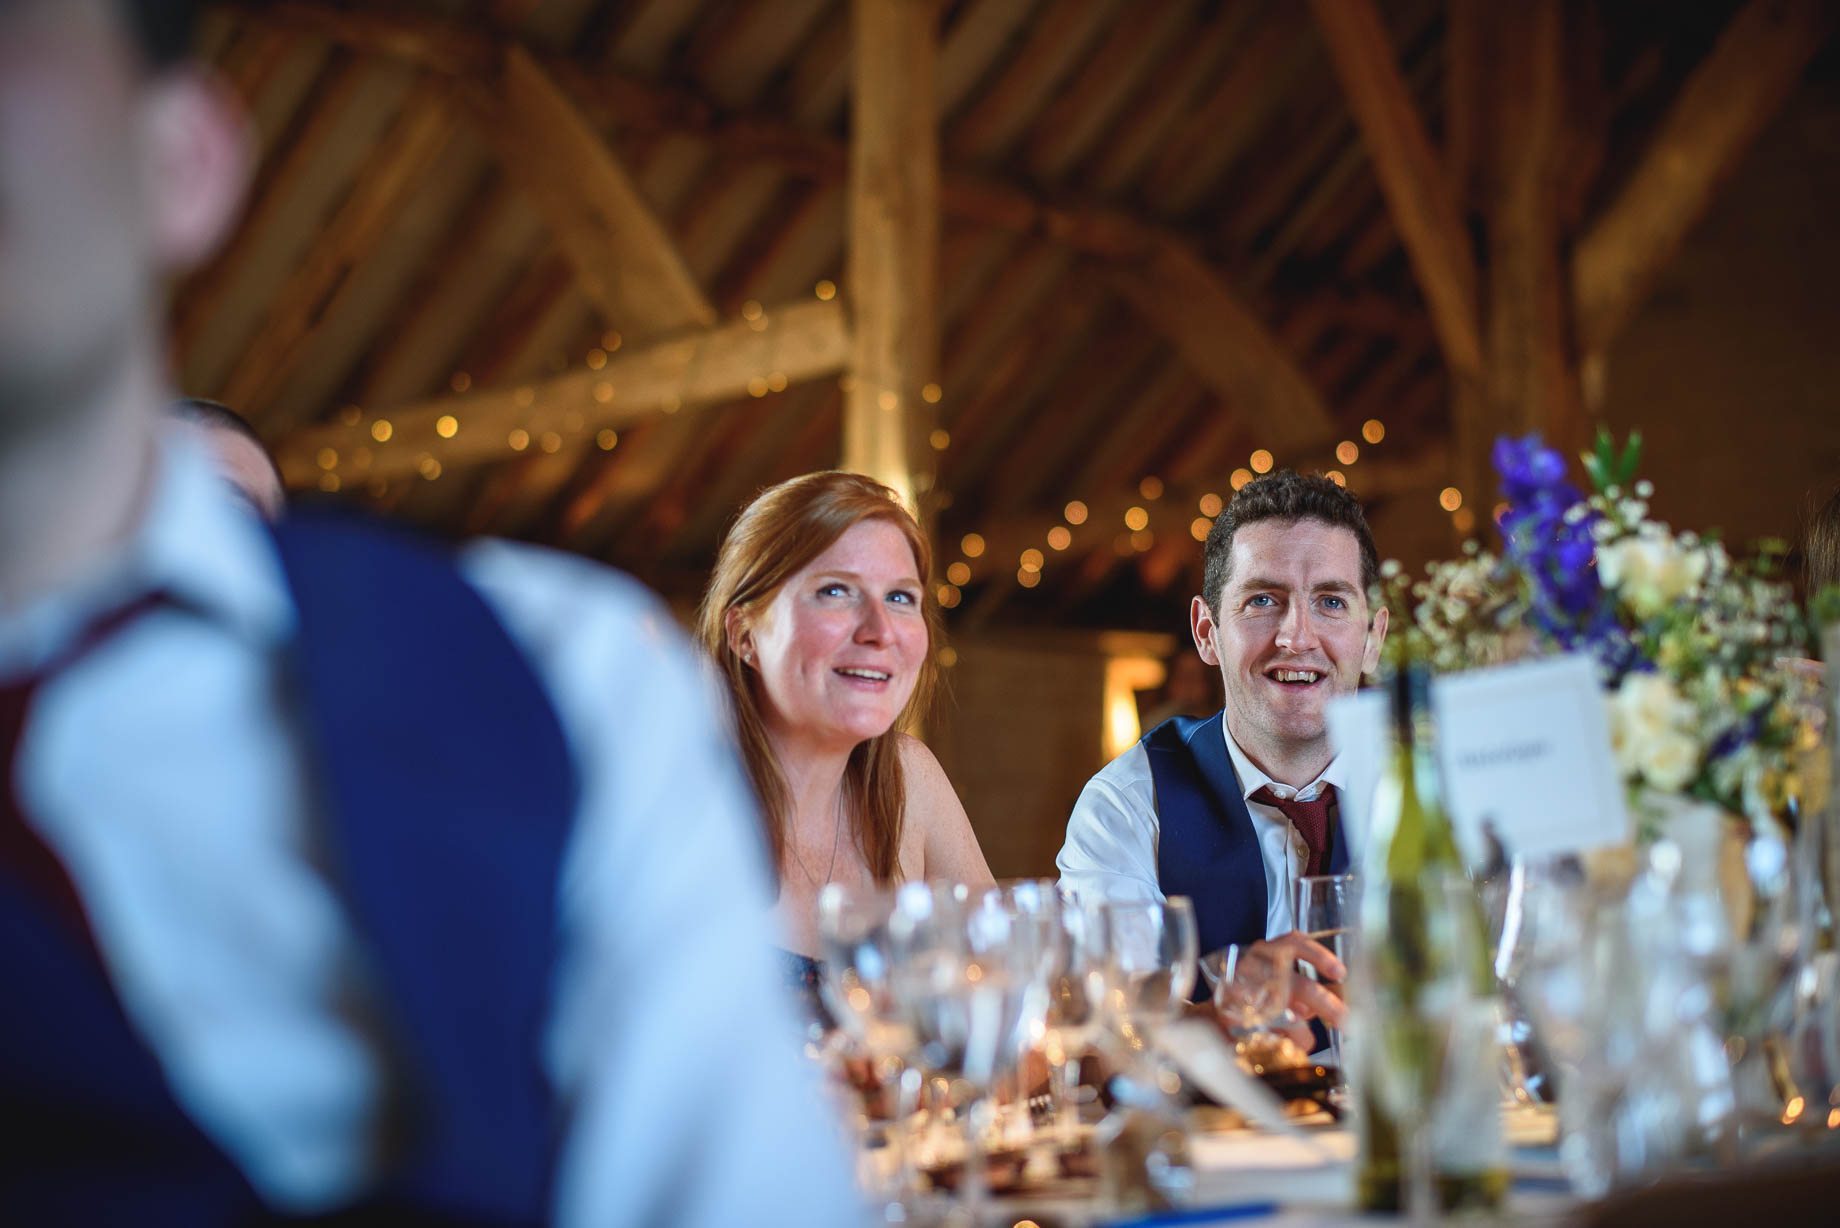 Bury Court Barn wedding photography by Guy Collier - Heather and Pat (149 of 170)